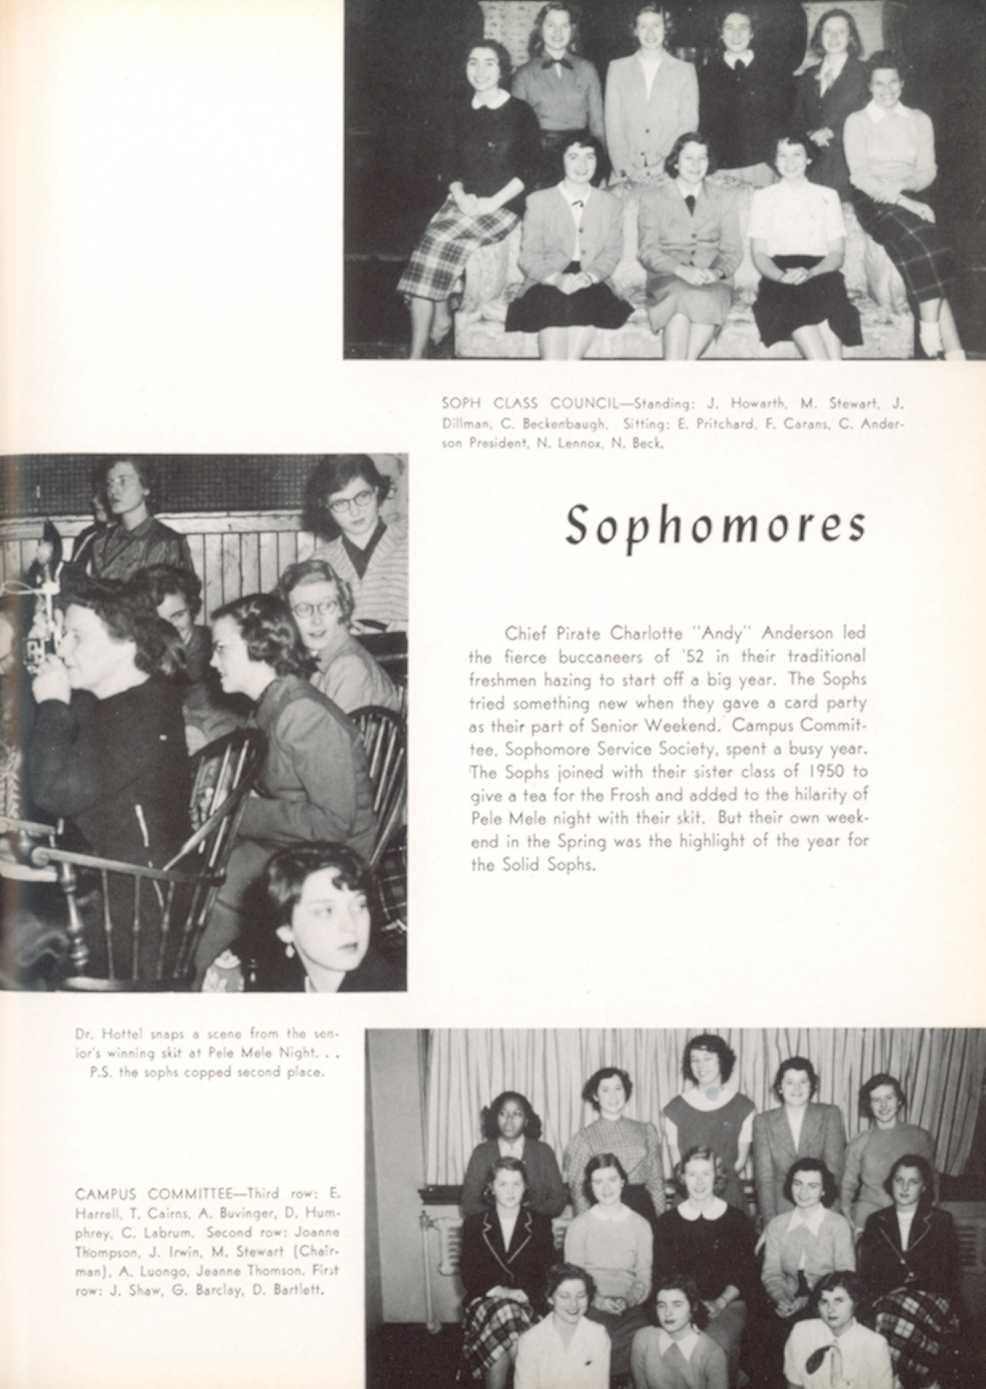 "(Chairman), Dr mphrey, rson, Ande Carans, C President, N Lennox, N Beck t, Sophomore s Chief Pirate Charlotte ""Andy"" Anderson led the fierce buccaneers of '52 in their traditiona l freshmen hazing to"